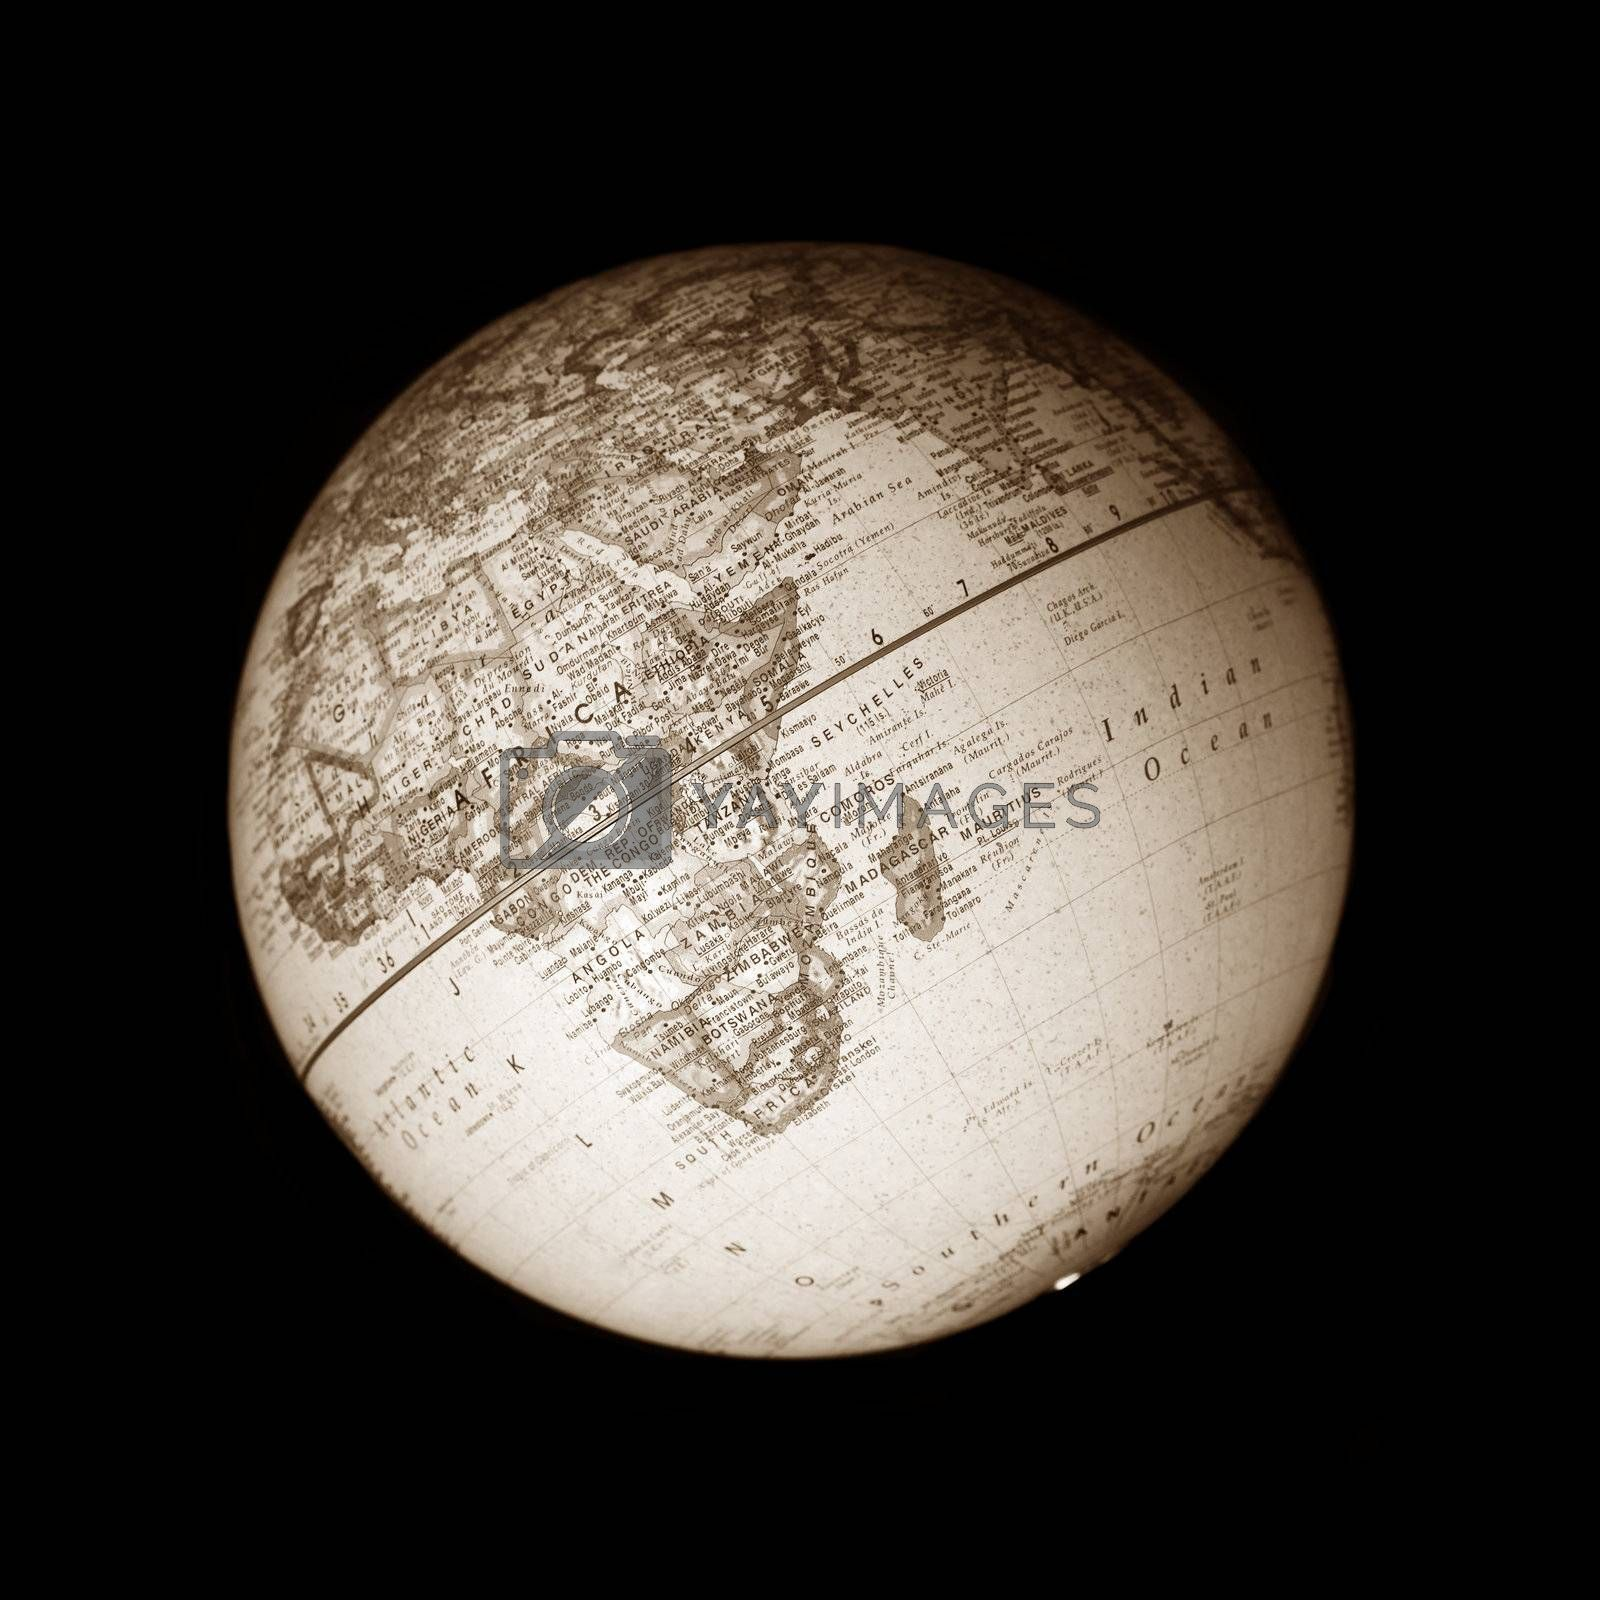 Isolated earth globe on black background